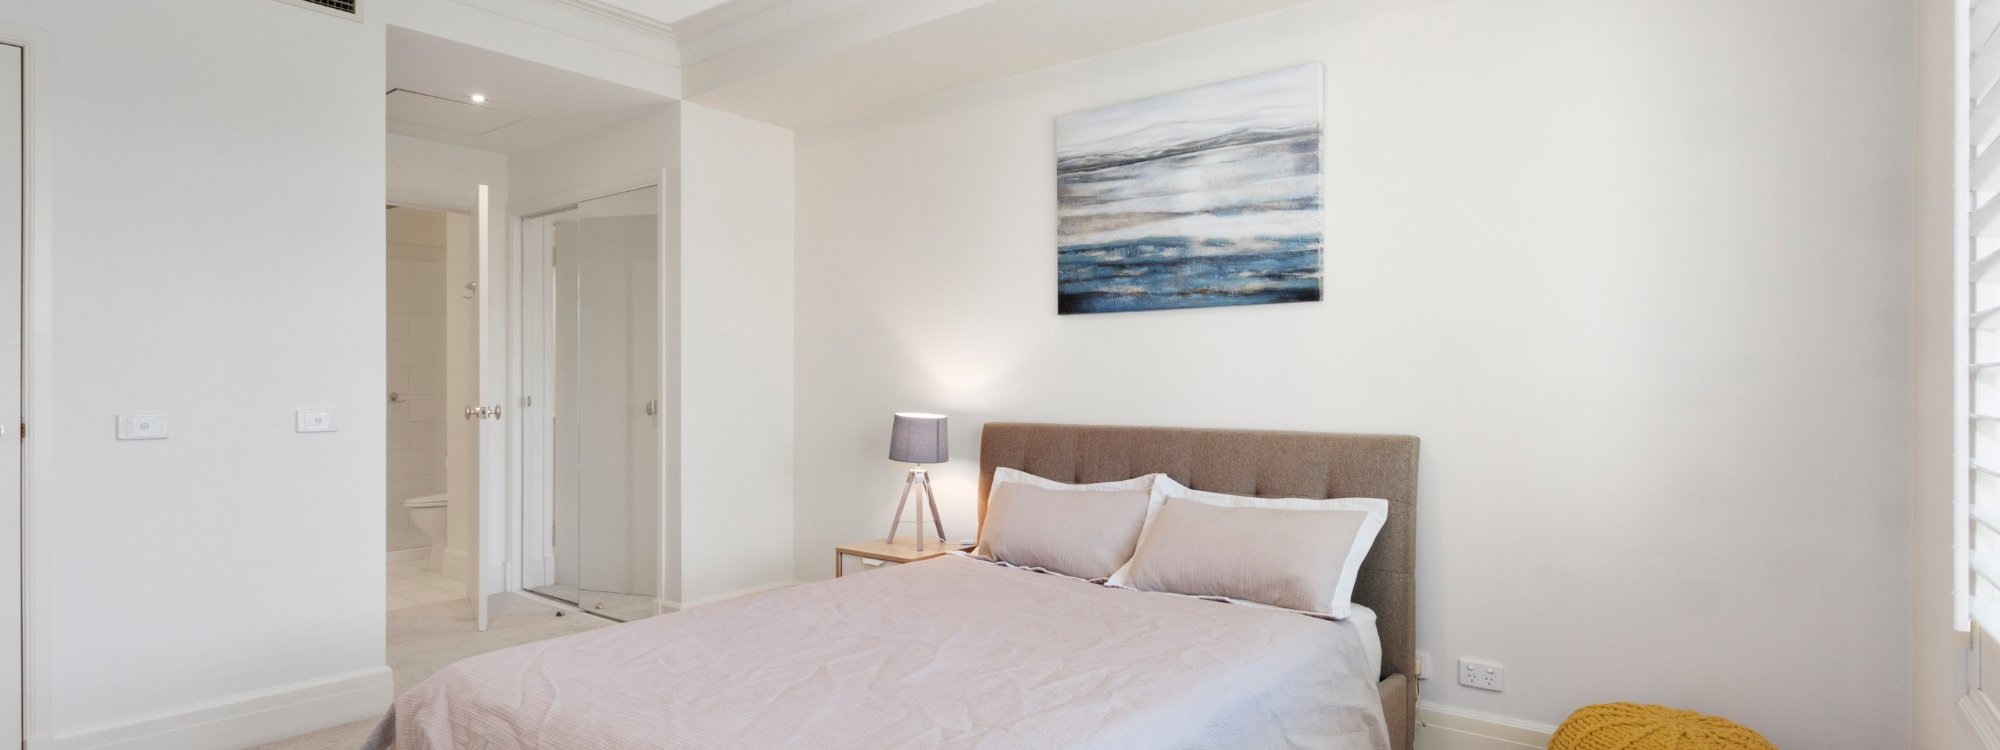 Alberts on Esplanade - Port Melbourne - Master bedroom to ensuite